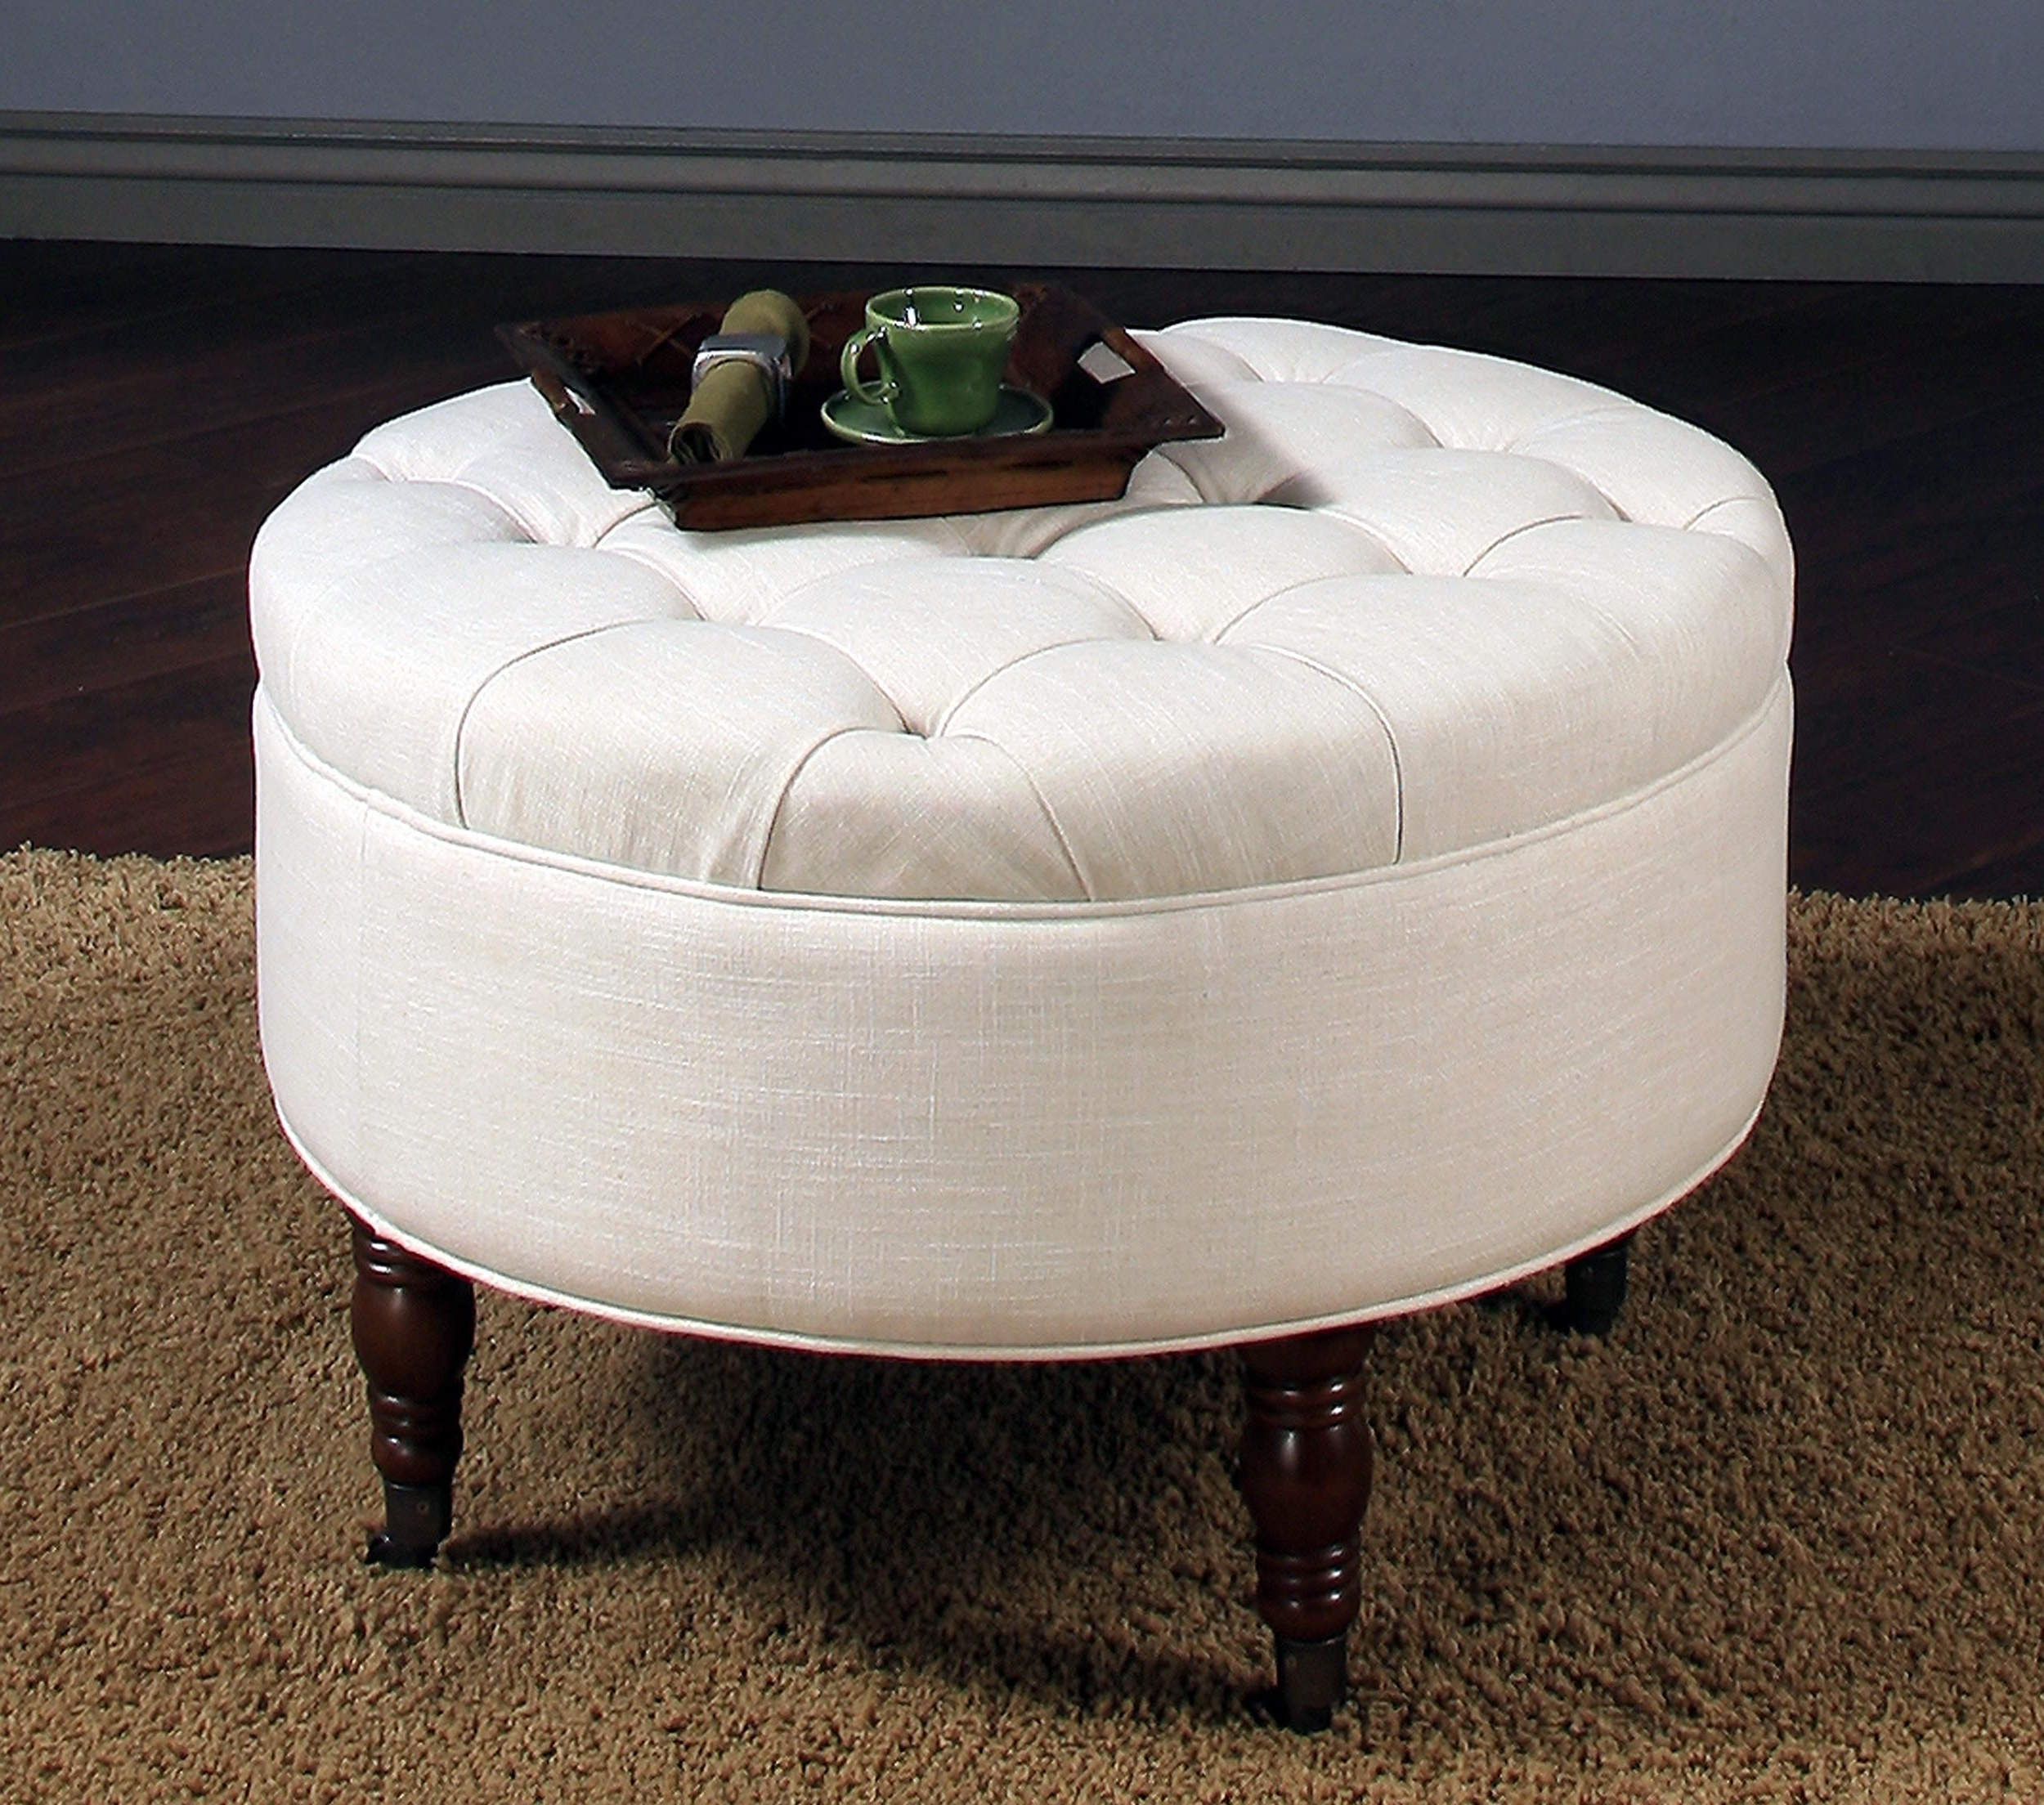 Newest Round Button Tufted Coffee Tables With Regard To Coffee Table: Round Tufted Storage Ottoman Coffee Table Design How (Gallery 5 of 20)